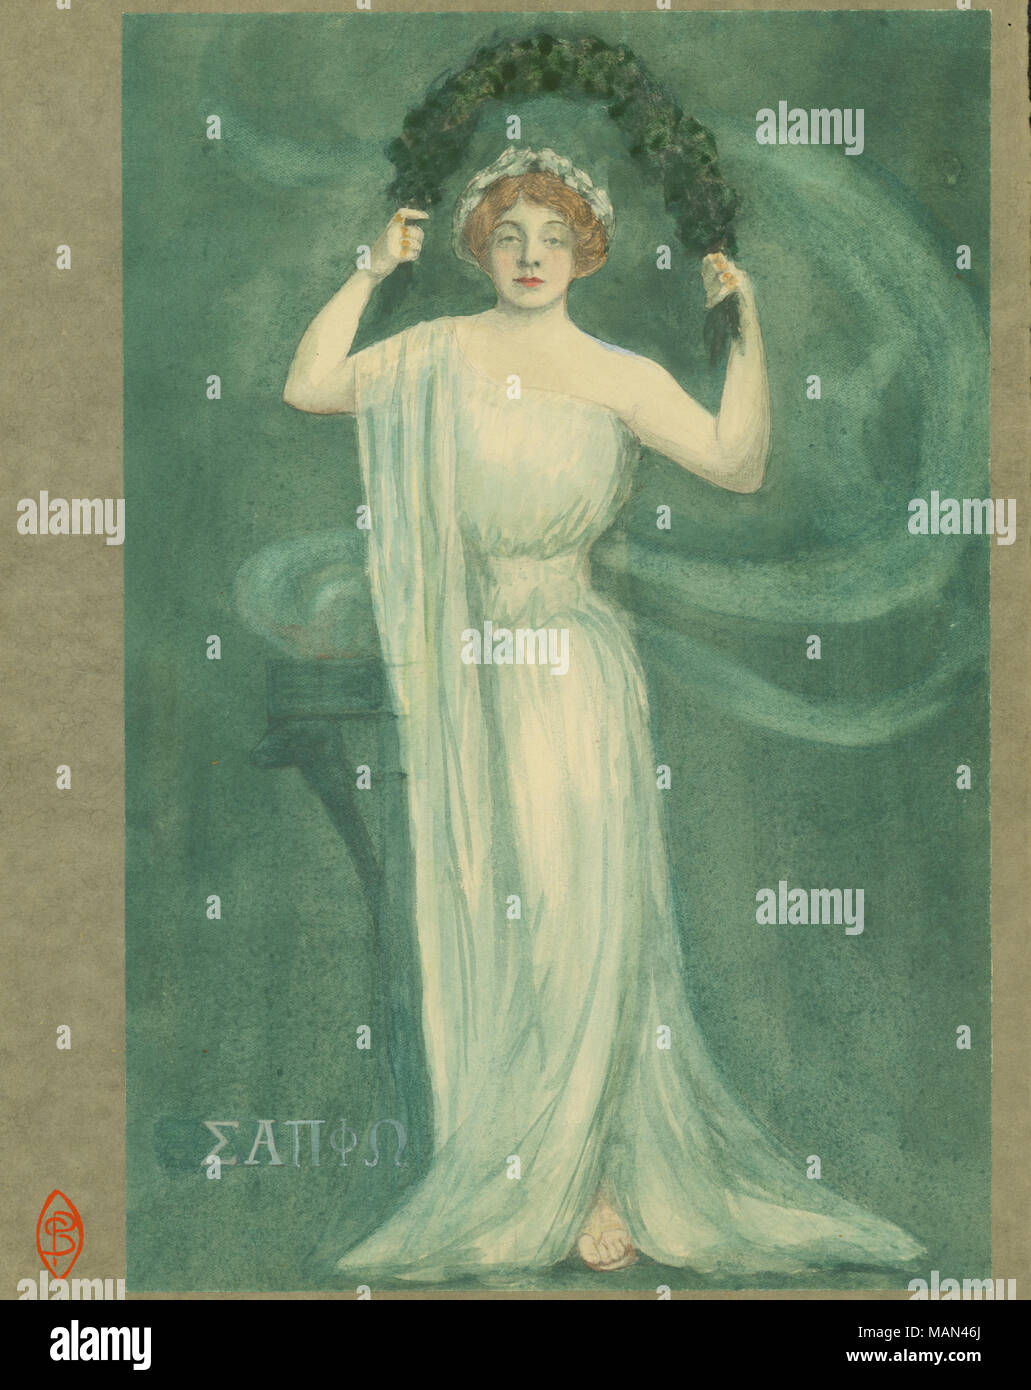 Watercolor design for a poster of actress Olga Nethersole appearing as Sappho by Petronelle Sombart. Title:The Potter's Wheel, Volume 3, Number 7, page 9, May 1907  . May 1907. Sombart, Petronelle, 1888- - Stock Image